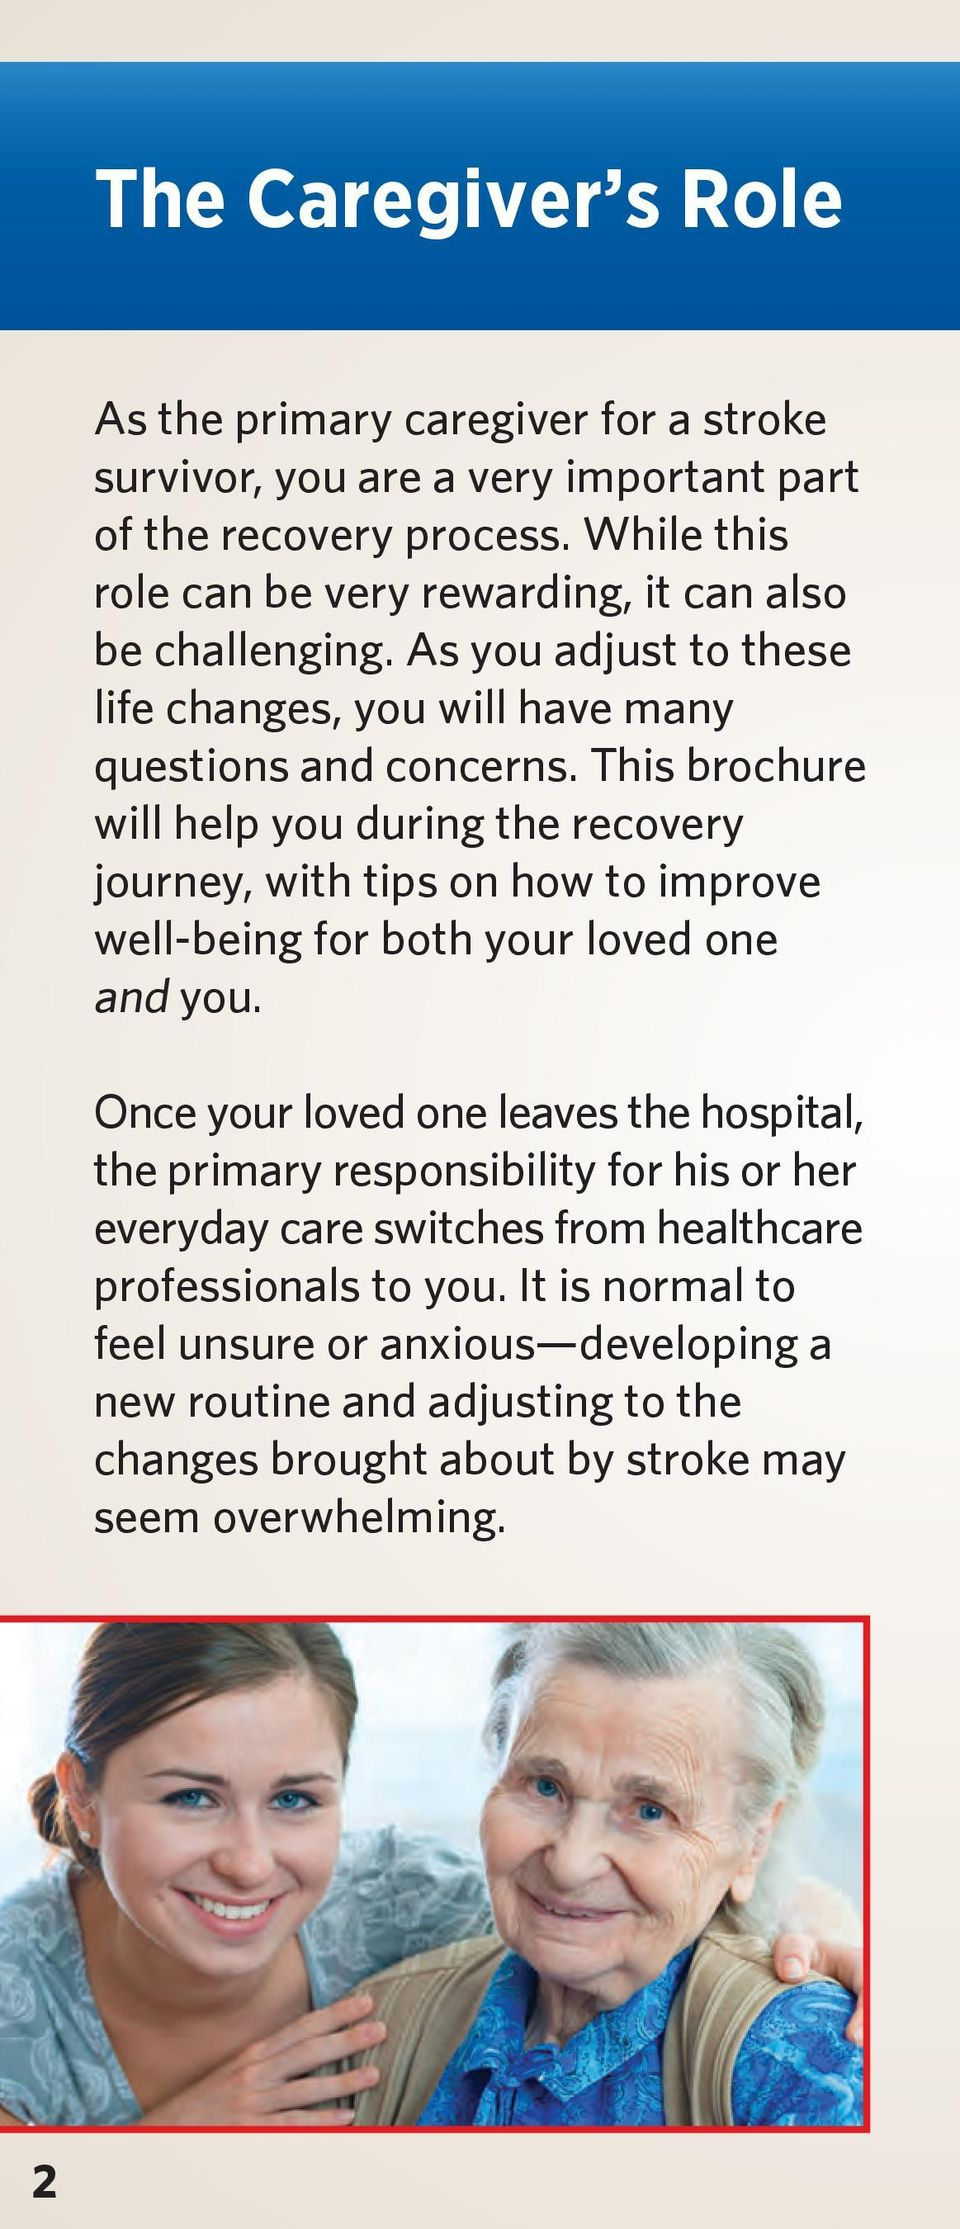 This brochure will help you during the recovery journey, with tips on how to improve well-being for both your loved one and you.